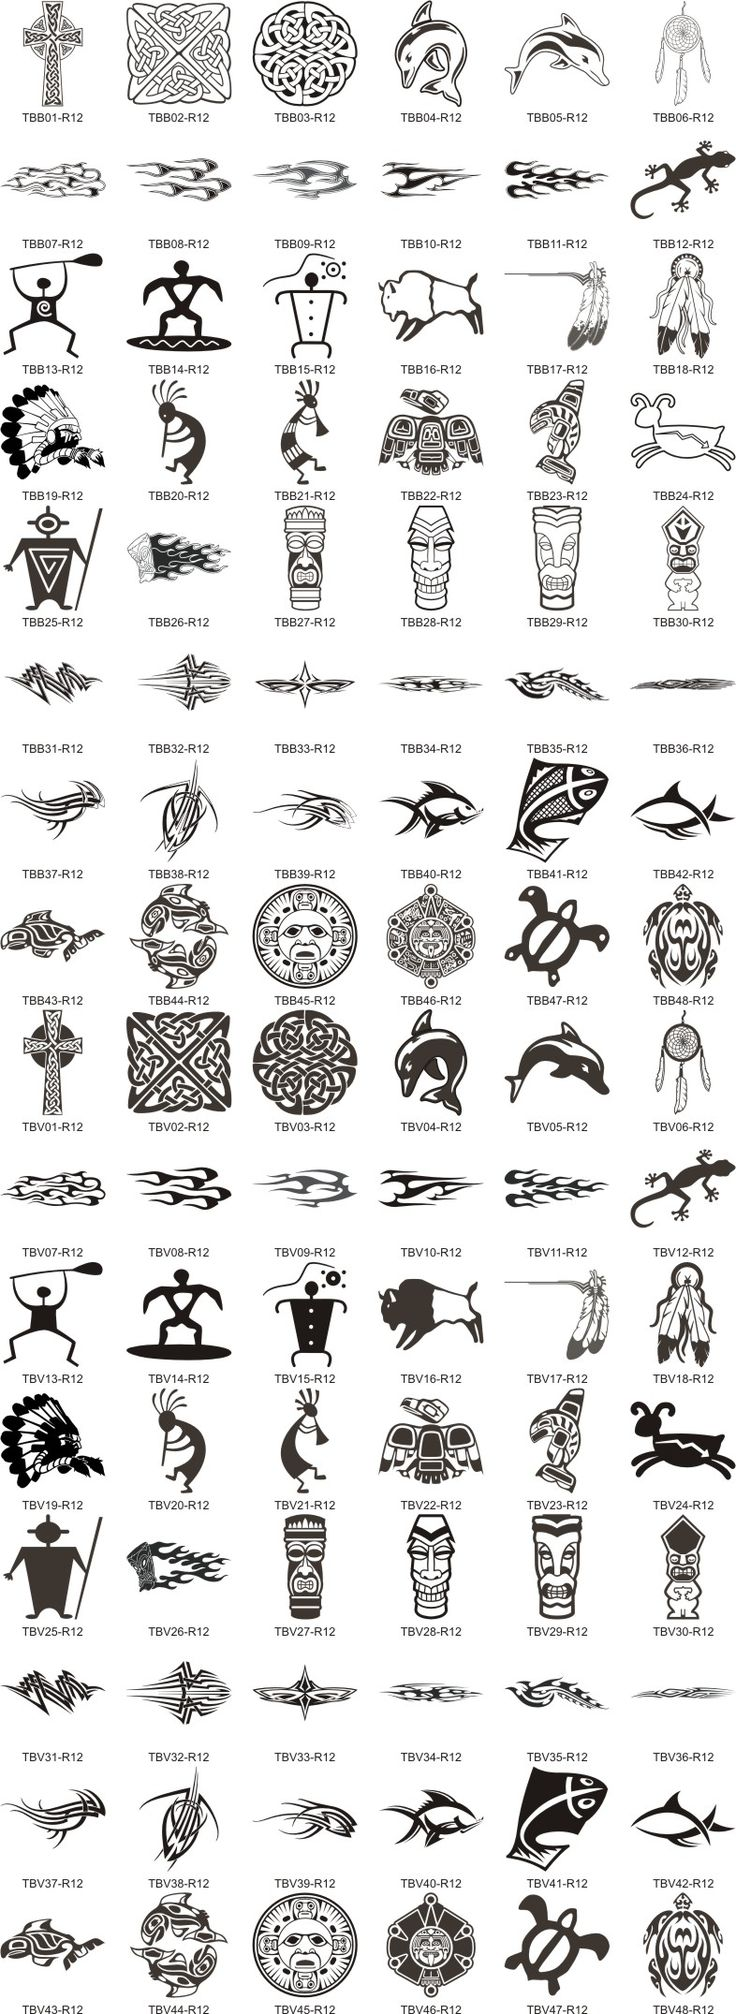 Example of symbols gallery symbol and sign ideas 106 best symbols images on pinterest signs sacred geometry and symbols and their meanings fonts and buycottarizona